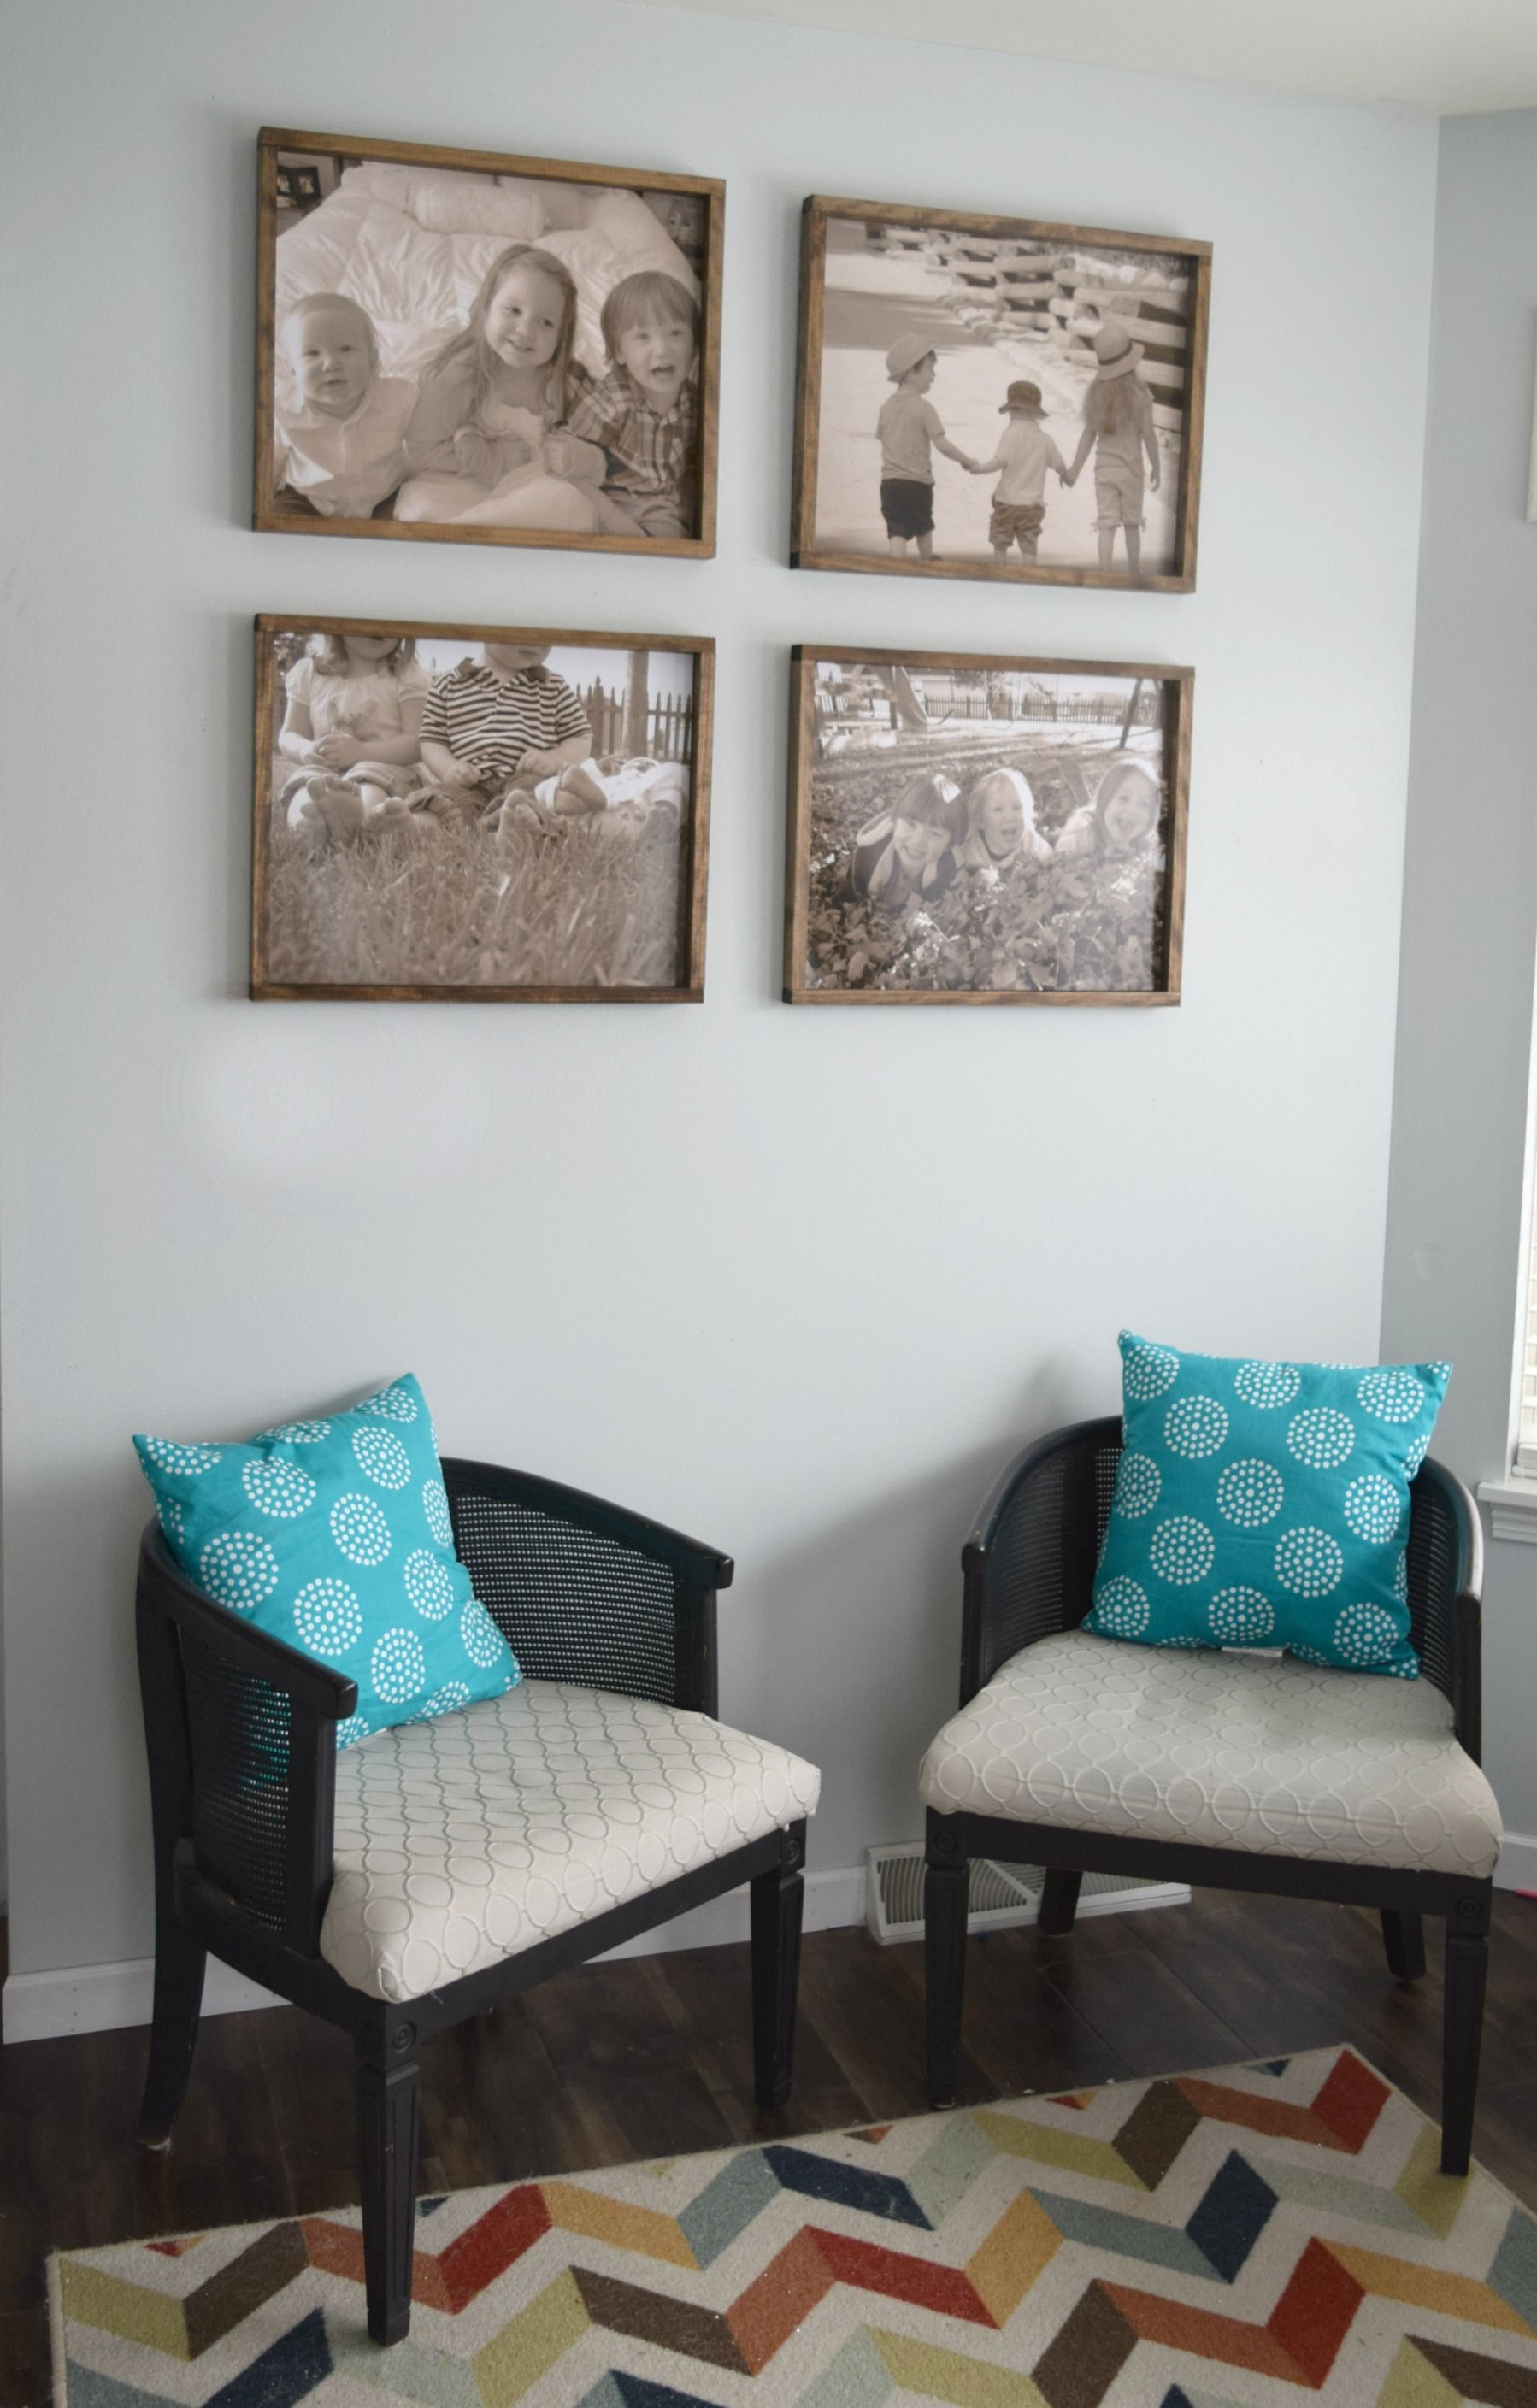 DIY Rustic Wood Frame - Making Pictures Into Memories